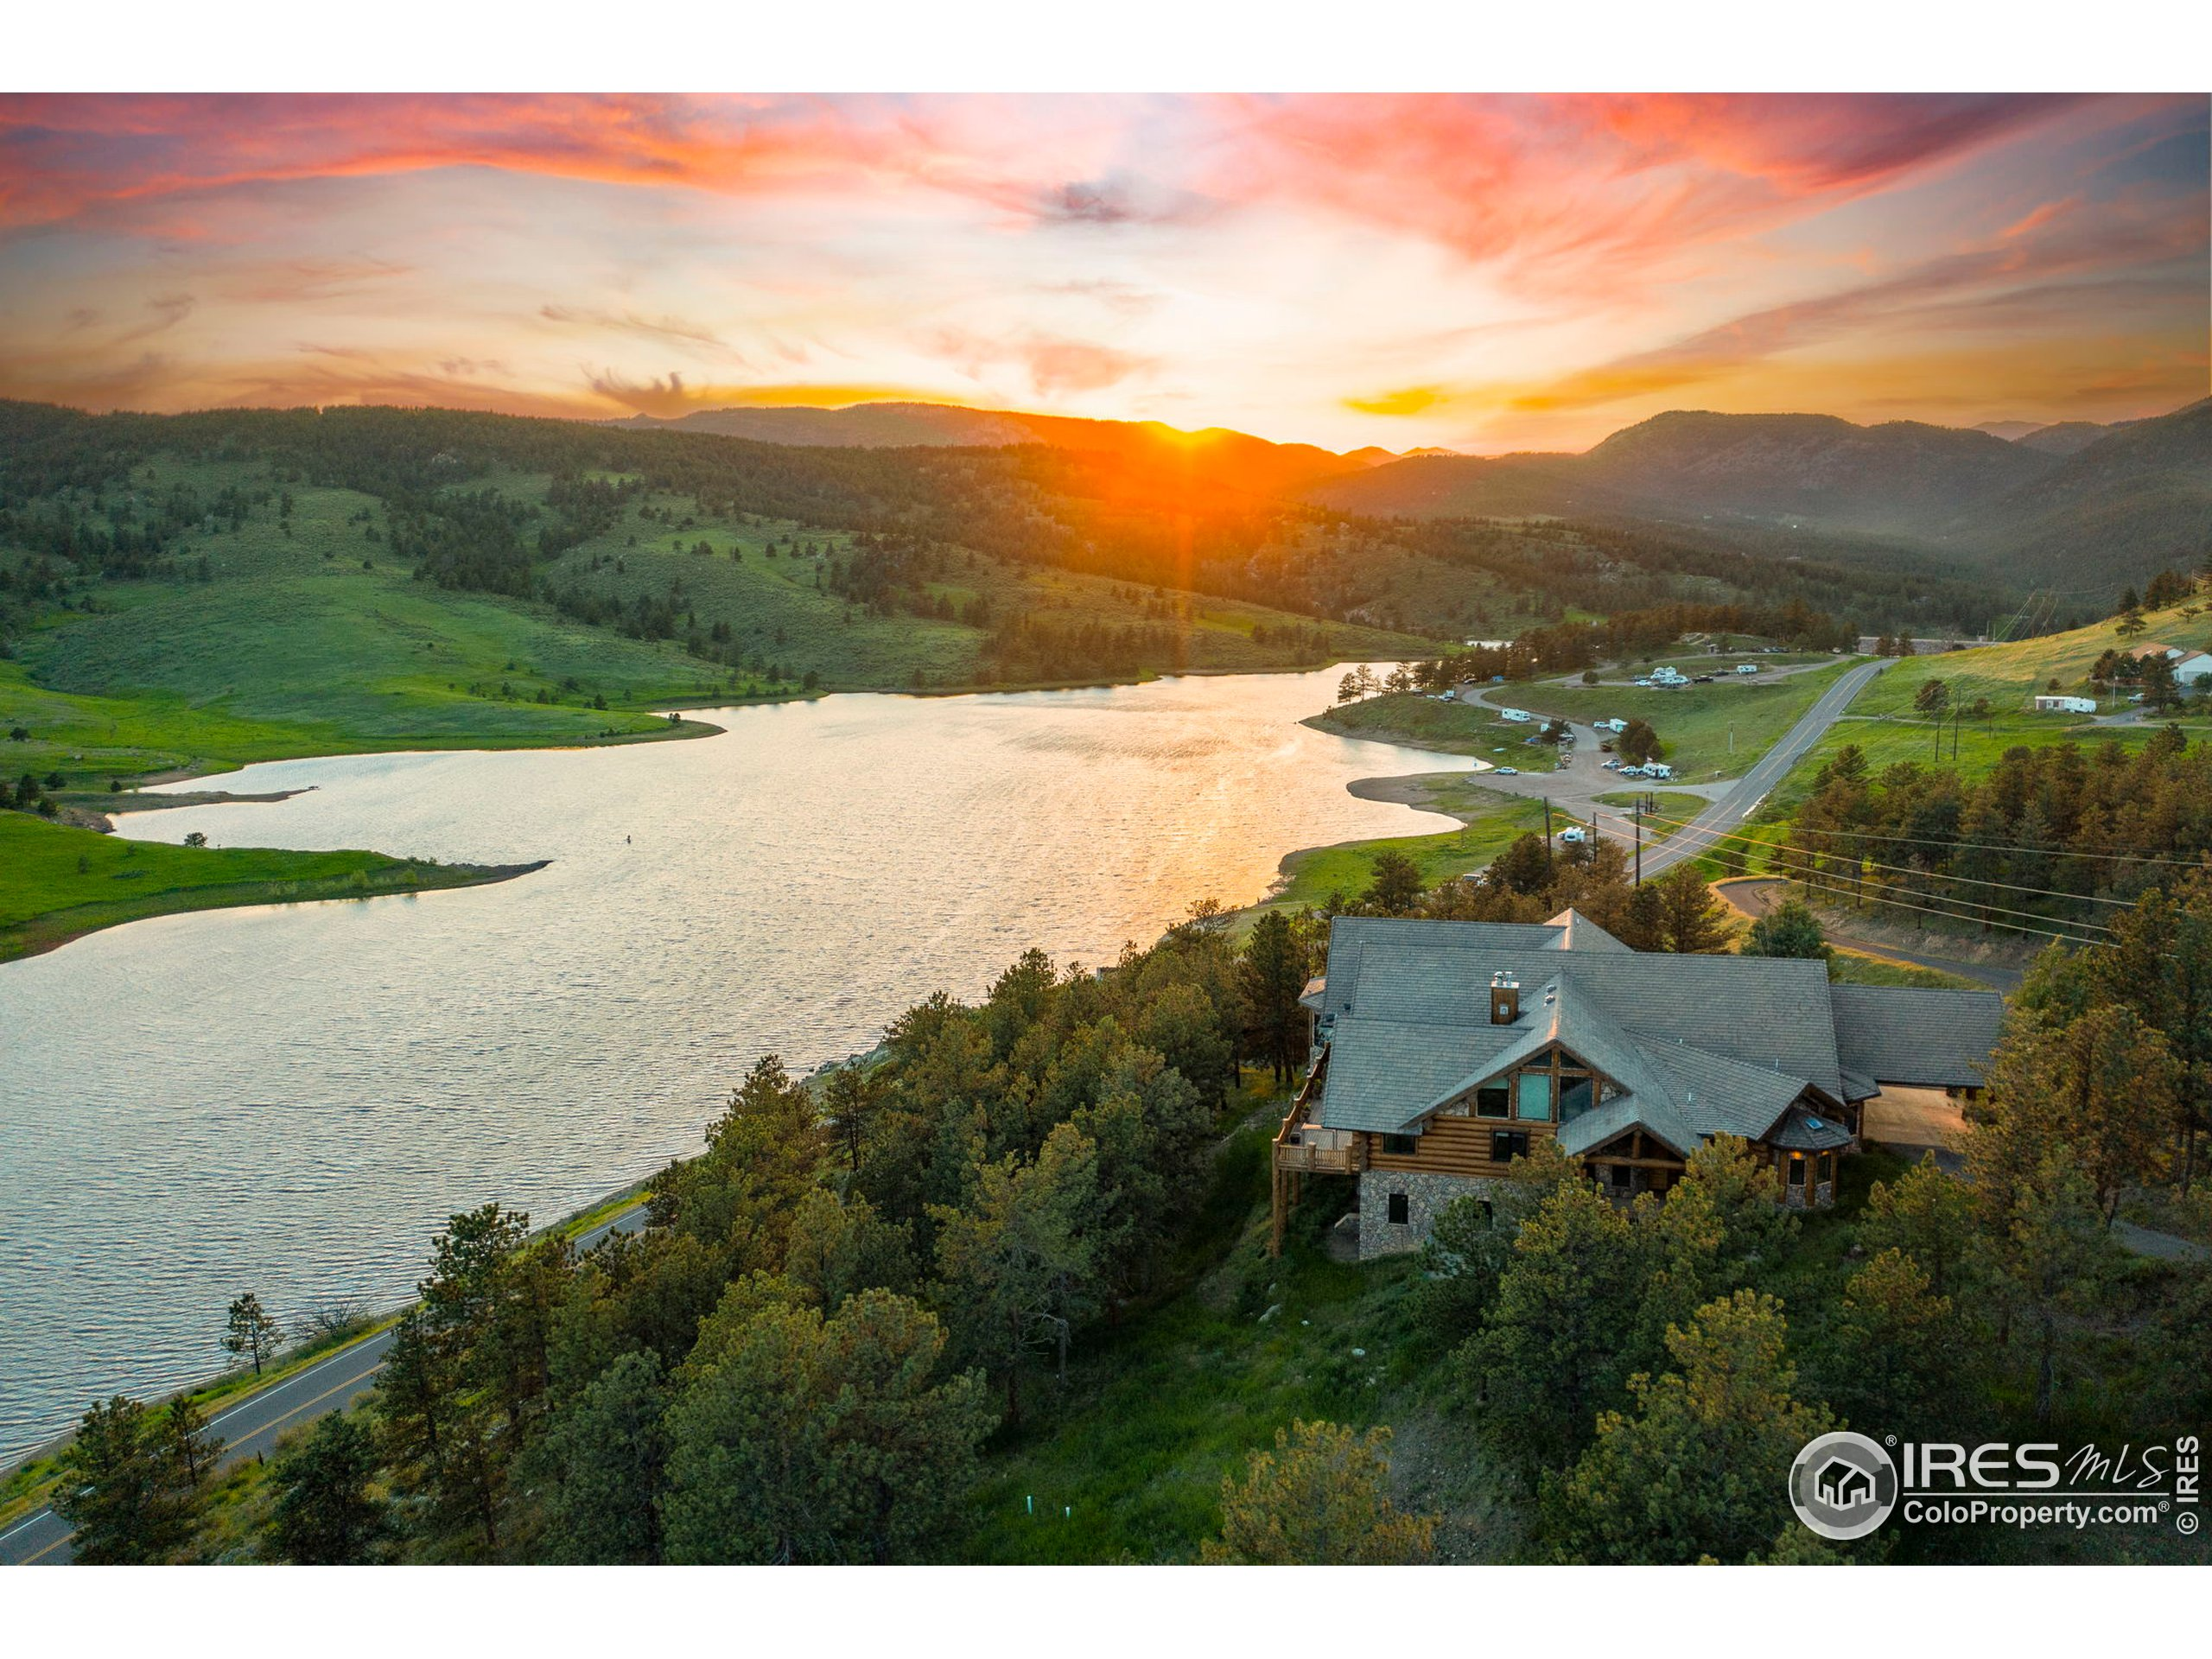 """Perfect for a corporate retreat, 2nd home or primary residence. NO HOA & NO METRO TAX. Work & Play from home in this 10,902 custom built luxury Log Home on Pinewood Reservoir. INCREDIBLE Rocky Mountain, valley & lake views. 20 mins to LVLD & roughly 45 minutes to Estes Park & RM National Park. Boat, hike, bike, ride, run, kayak & enjoy the Colorado lifestyle. 6 car finished garage w/ 8' doors. Gourmet kitchen, double islands, 48"""" range, built-in refrigerator/freezer, granite slab & 2 dining areas. Master suite w/ retreat, 2 walk-in closets & a 7-piece bath including a steam shower, jetted tub, bidet & urinal. Main floor laundry, front executive office, 30X20 main floor living room w/ stone wood burning fireplace + 2 additional beds (1 guest suit or in-law quarters). Upstairs features a loft + 2 more beds. 90% finished walk-out basement w/ rough in for a kitchenette or wet bar, bedroom w/ retreat, 3/4 bath & plenty of space for a billiard room."""